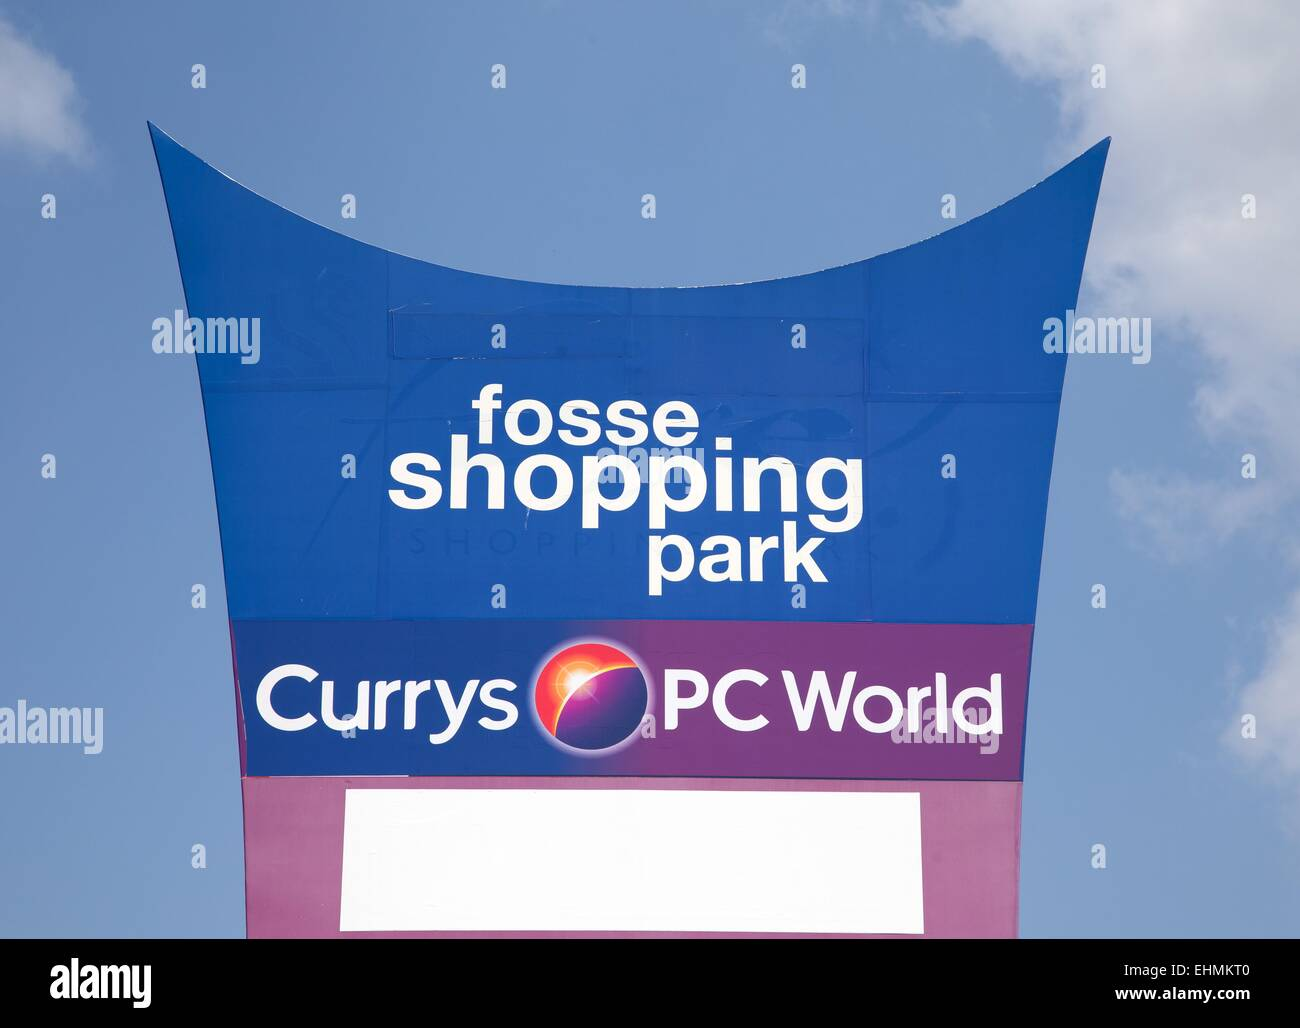 Sign for The Fosse shopping park, Leicester, Currys and PC World - Stock Image